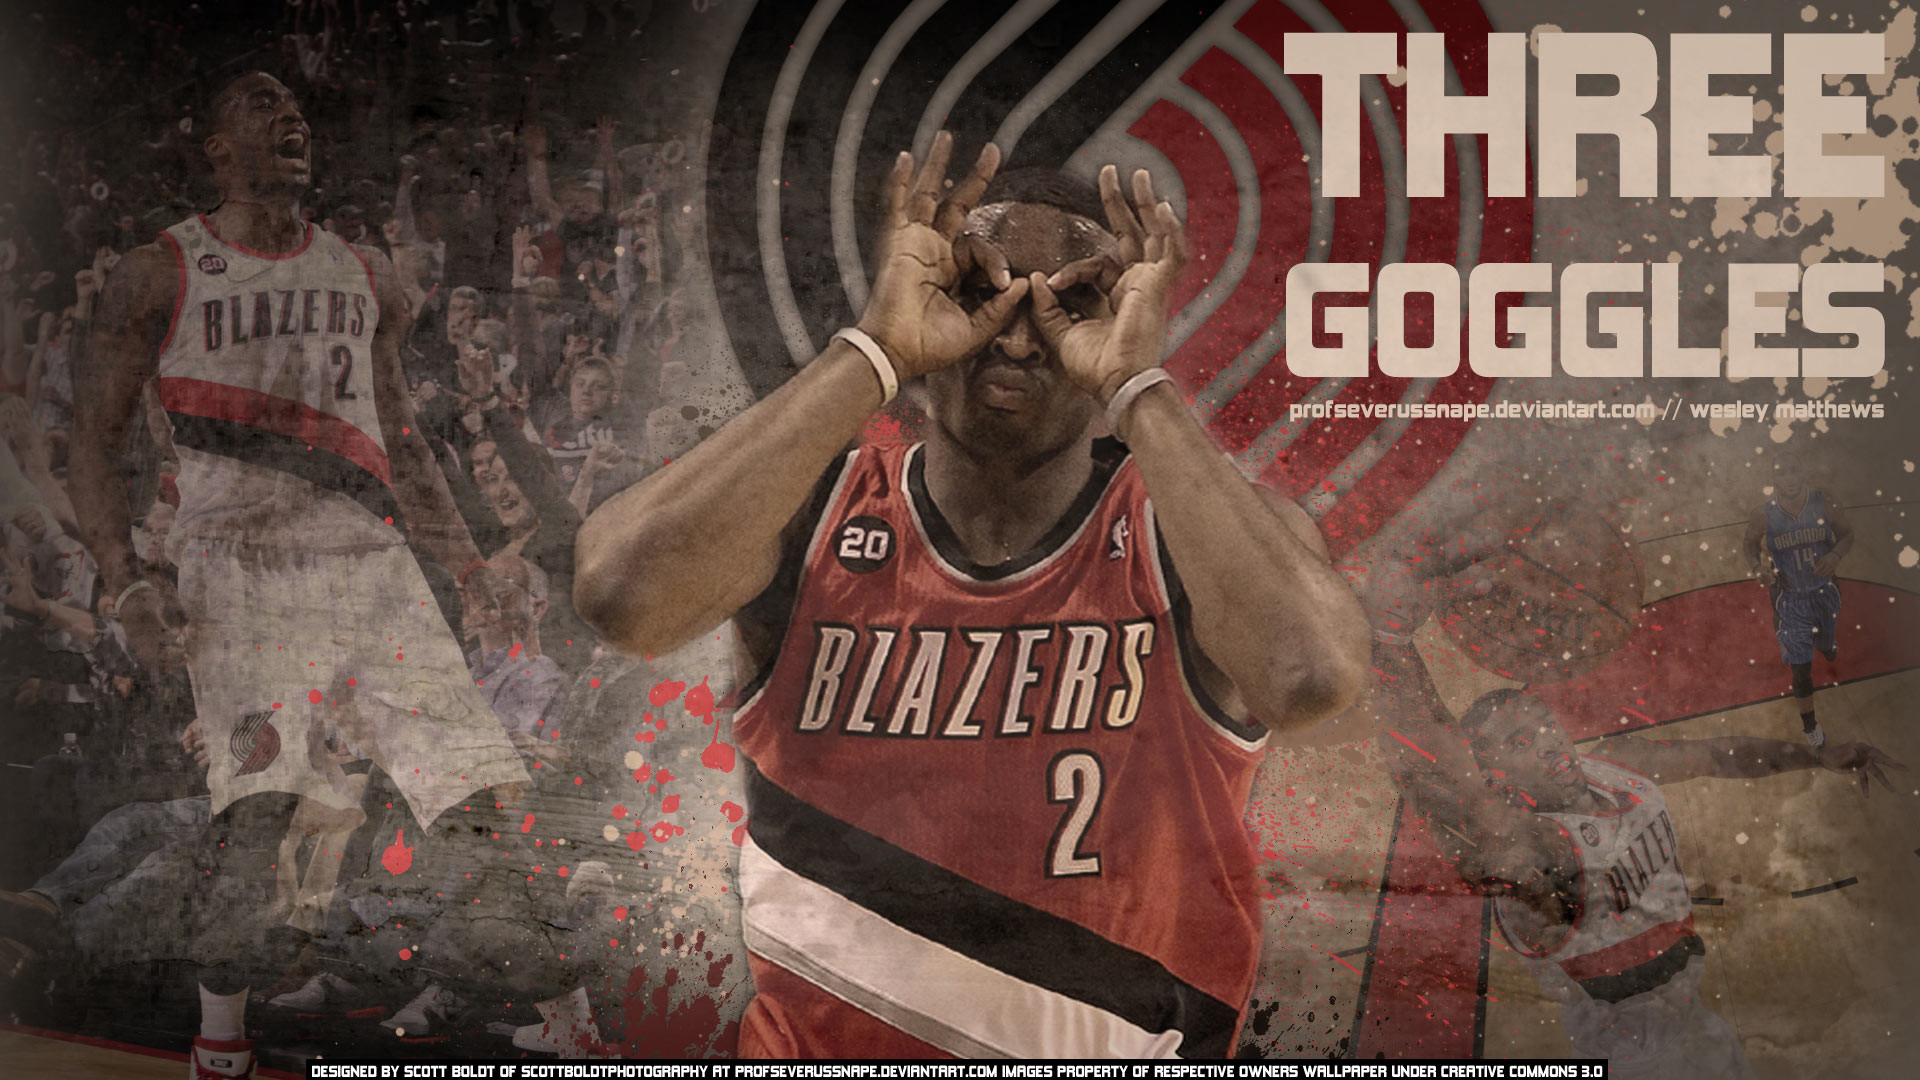 1920x1080 Wesley Matthews Trail Blazers Widescreen Wallpaper